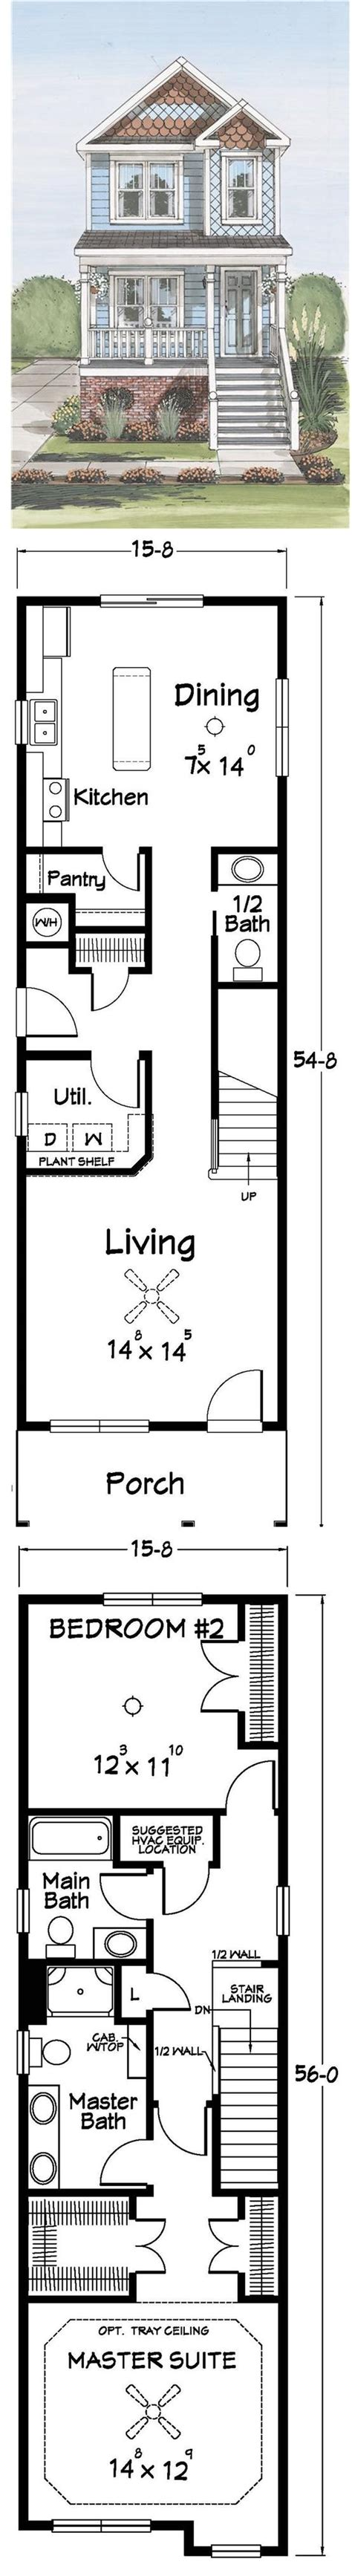 house plans small lot narrow house plans woodworking projects plans